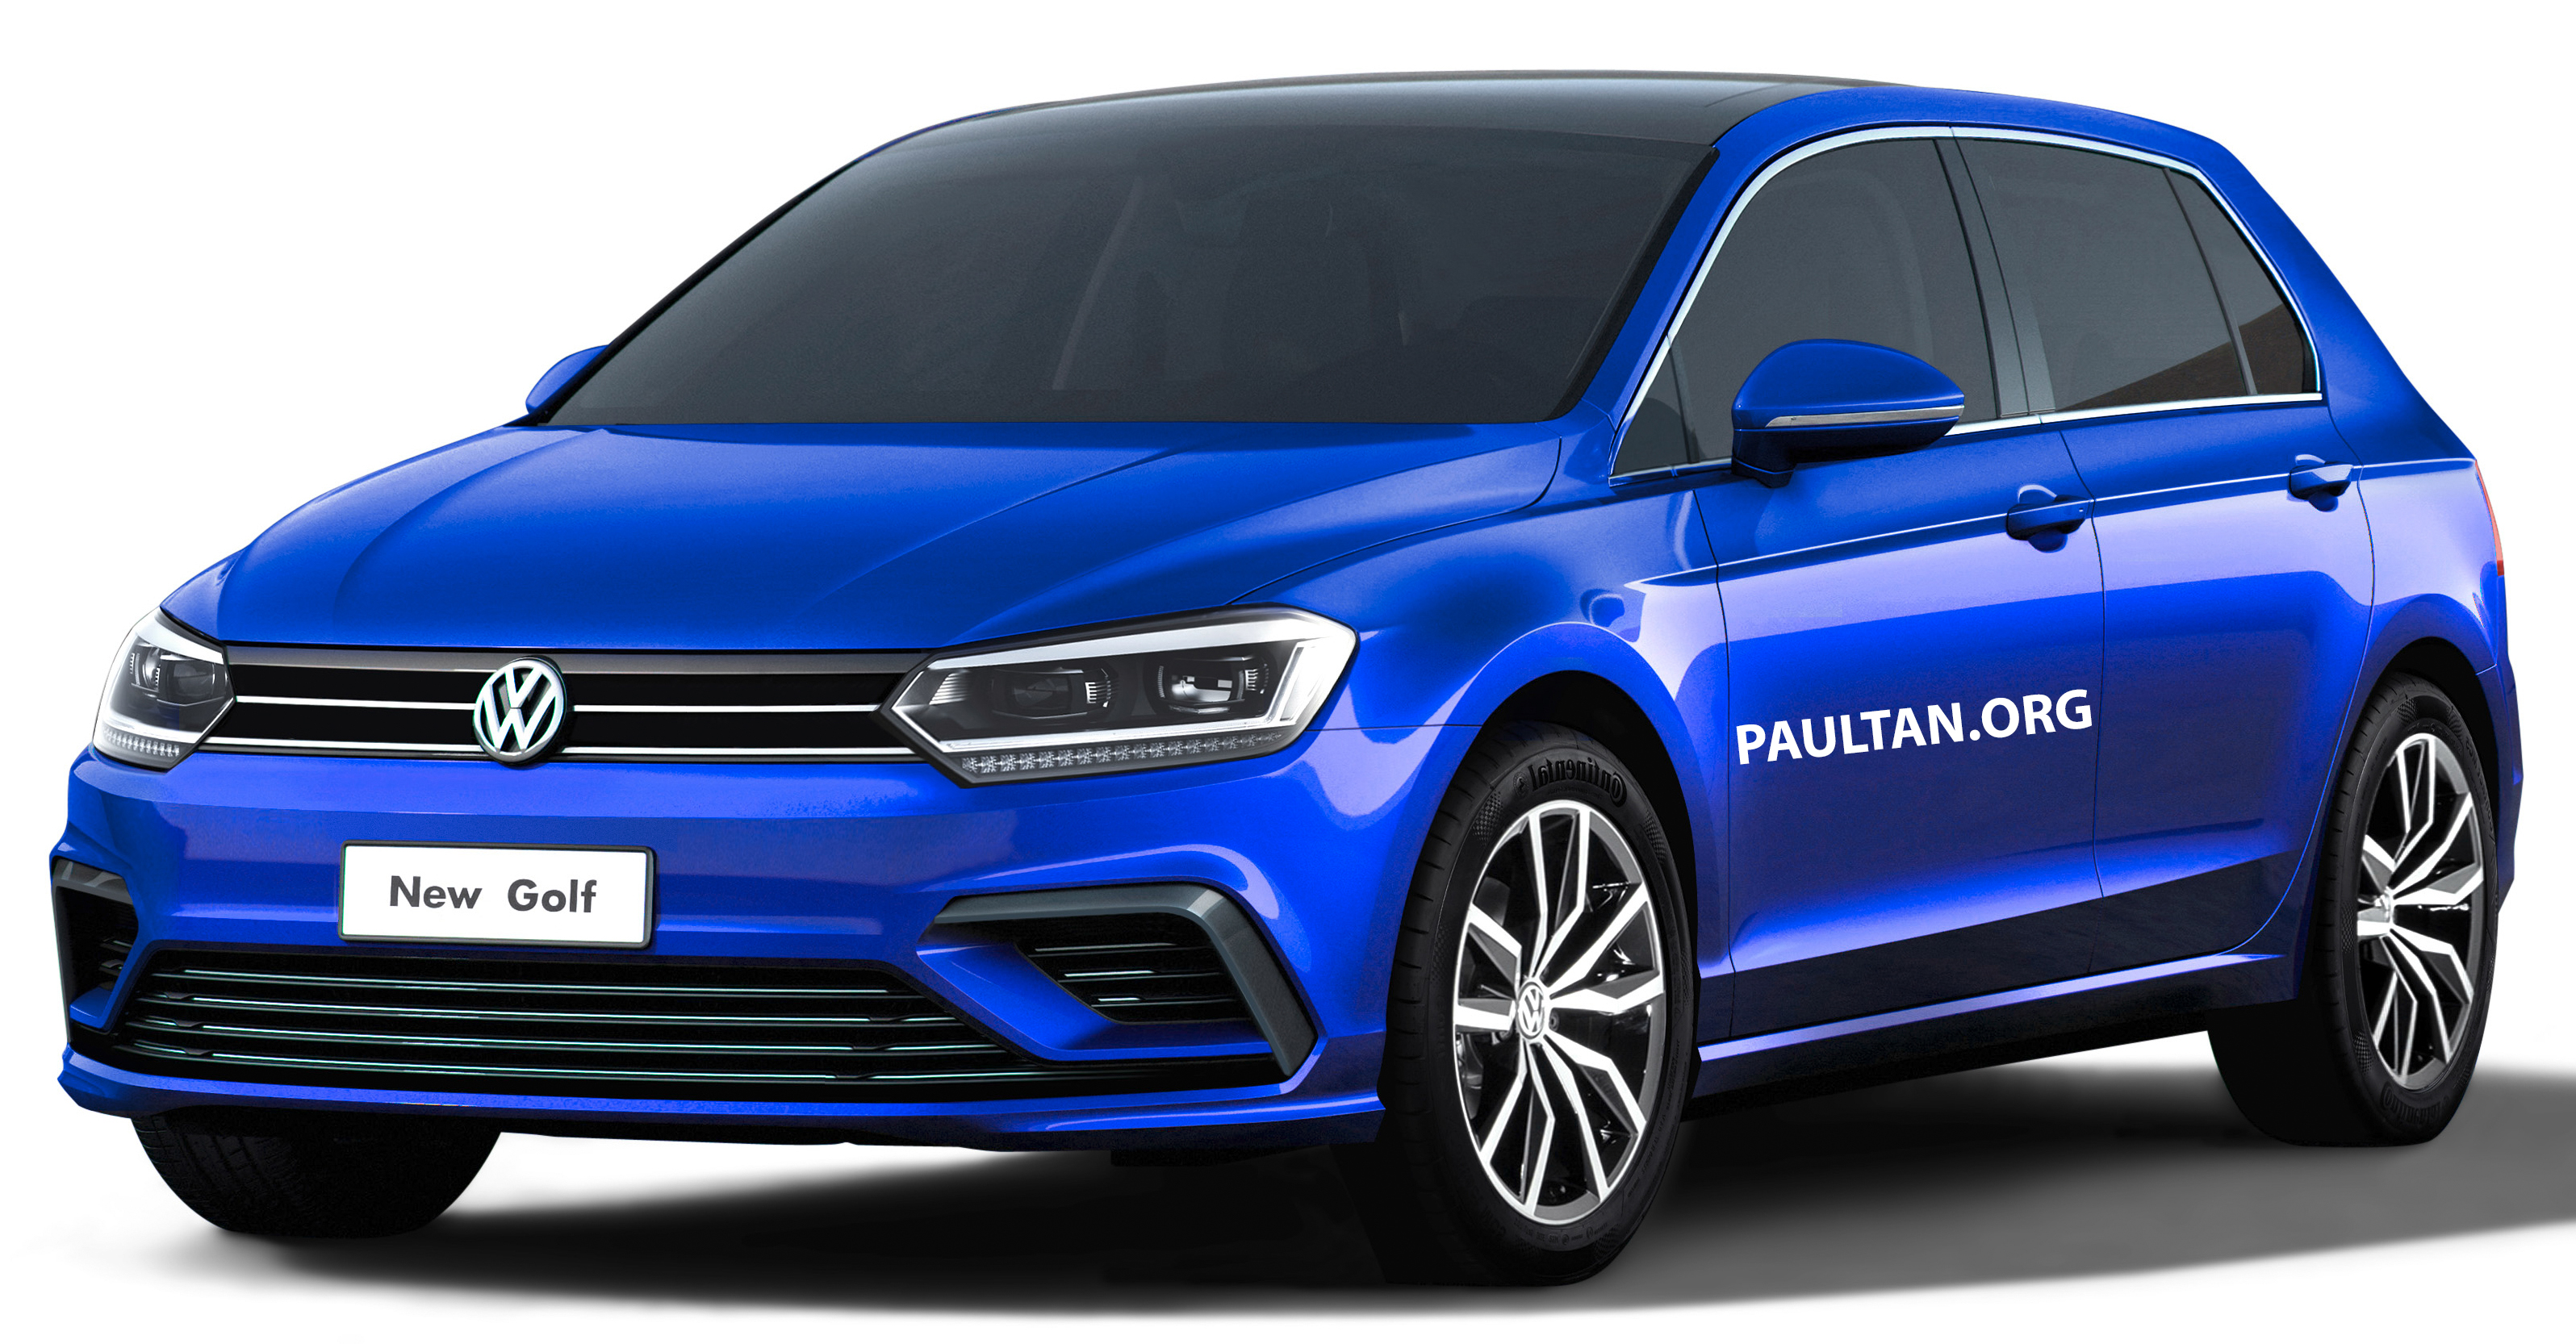 2019 Volkswagen Golf Mk8 Rendered With New Styling on 02 golf gti